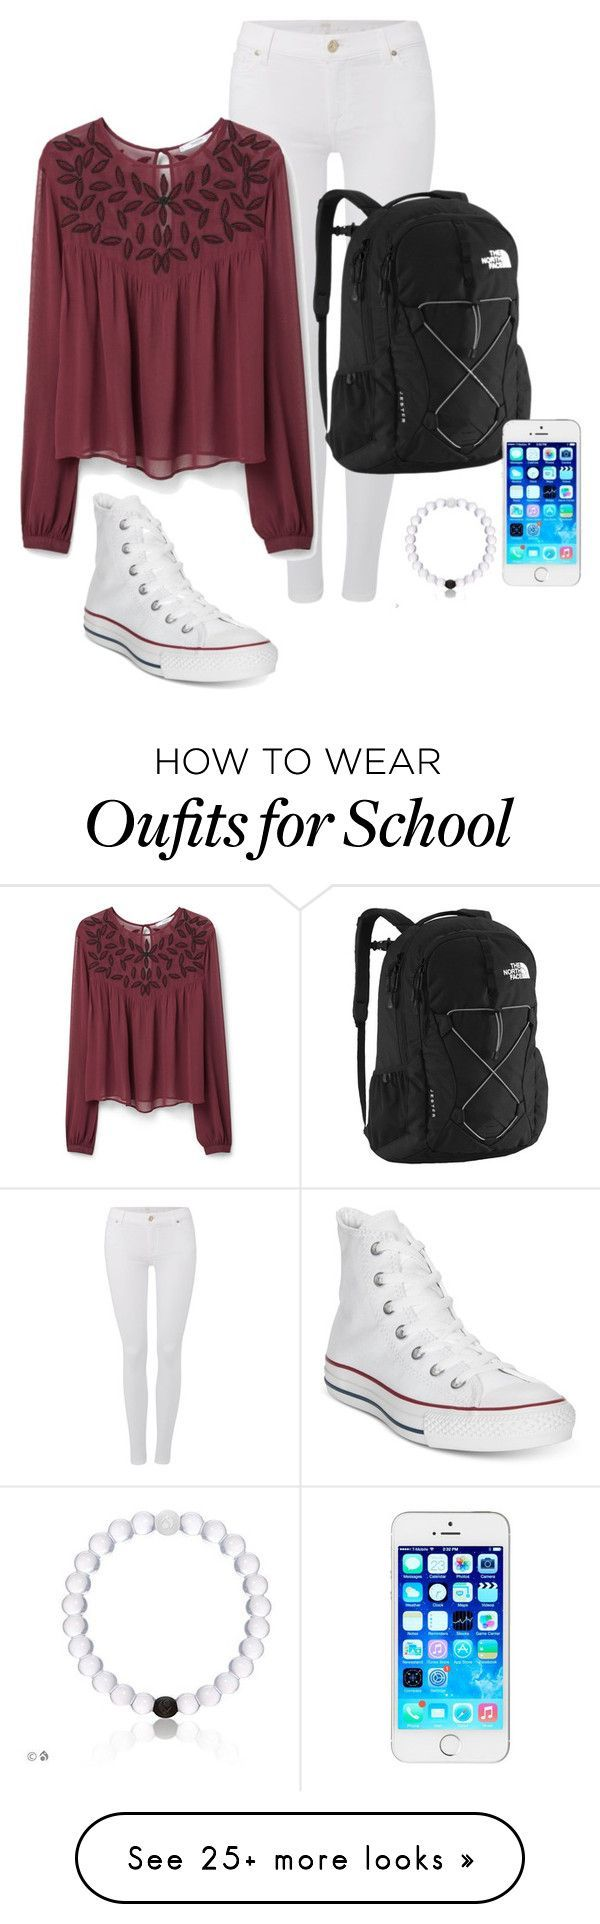 """""""school outfit """" by valeriaveil on Polyvore featuring Converse, 7 For All Mankind, The North Face, MANGO, women's clothing, women, female, woman, misses and juniors"""